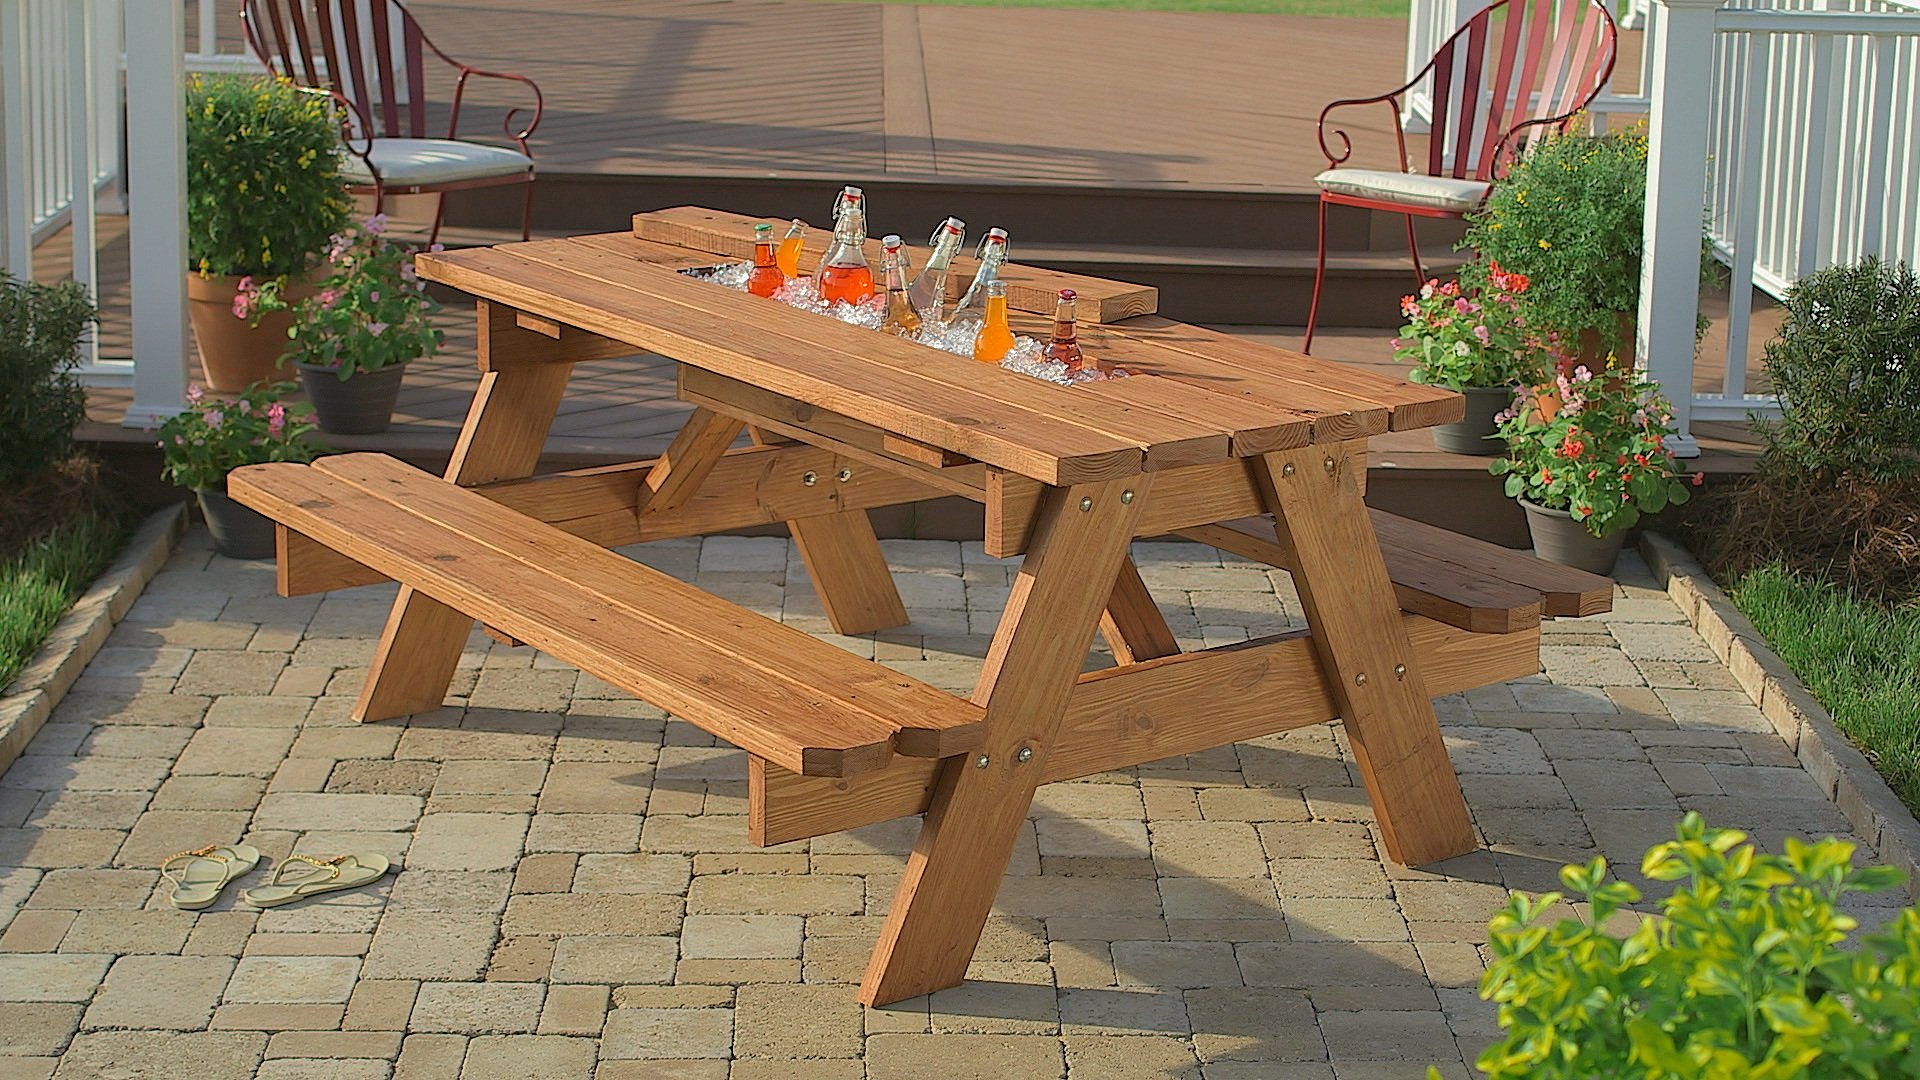 How to Build a Picnic Table with Built-in Cooler - Woodwork City Free ...